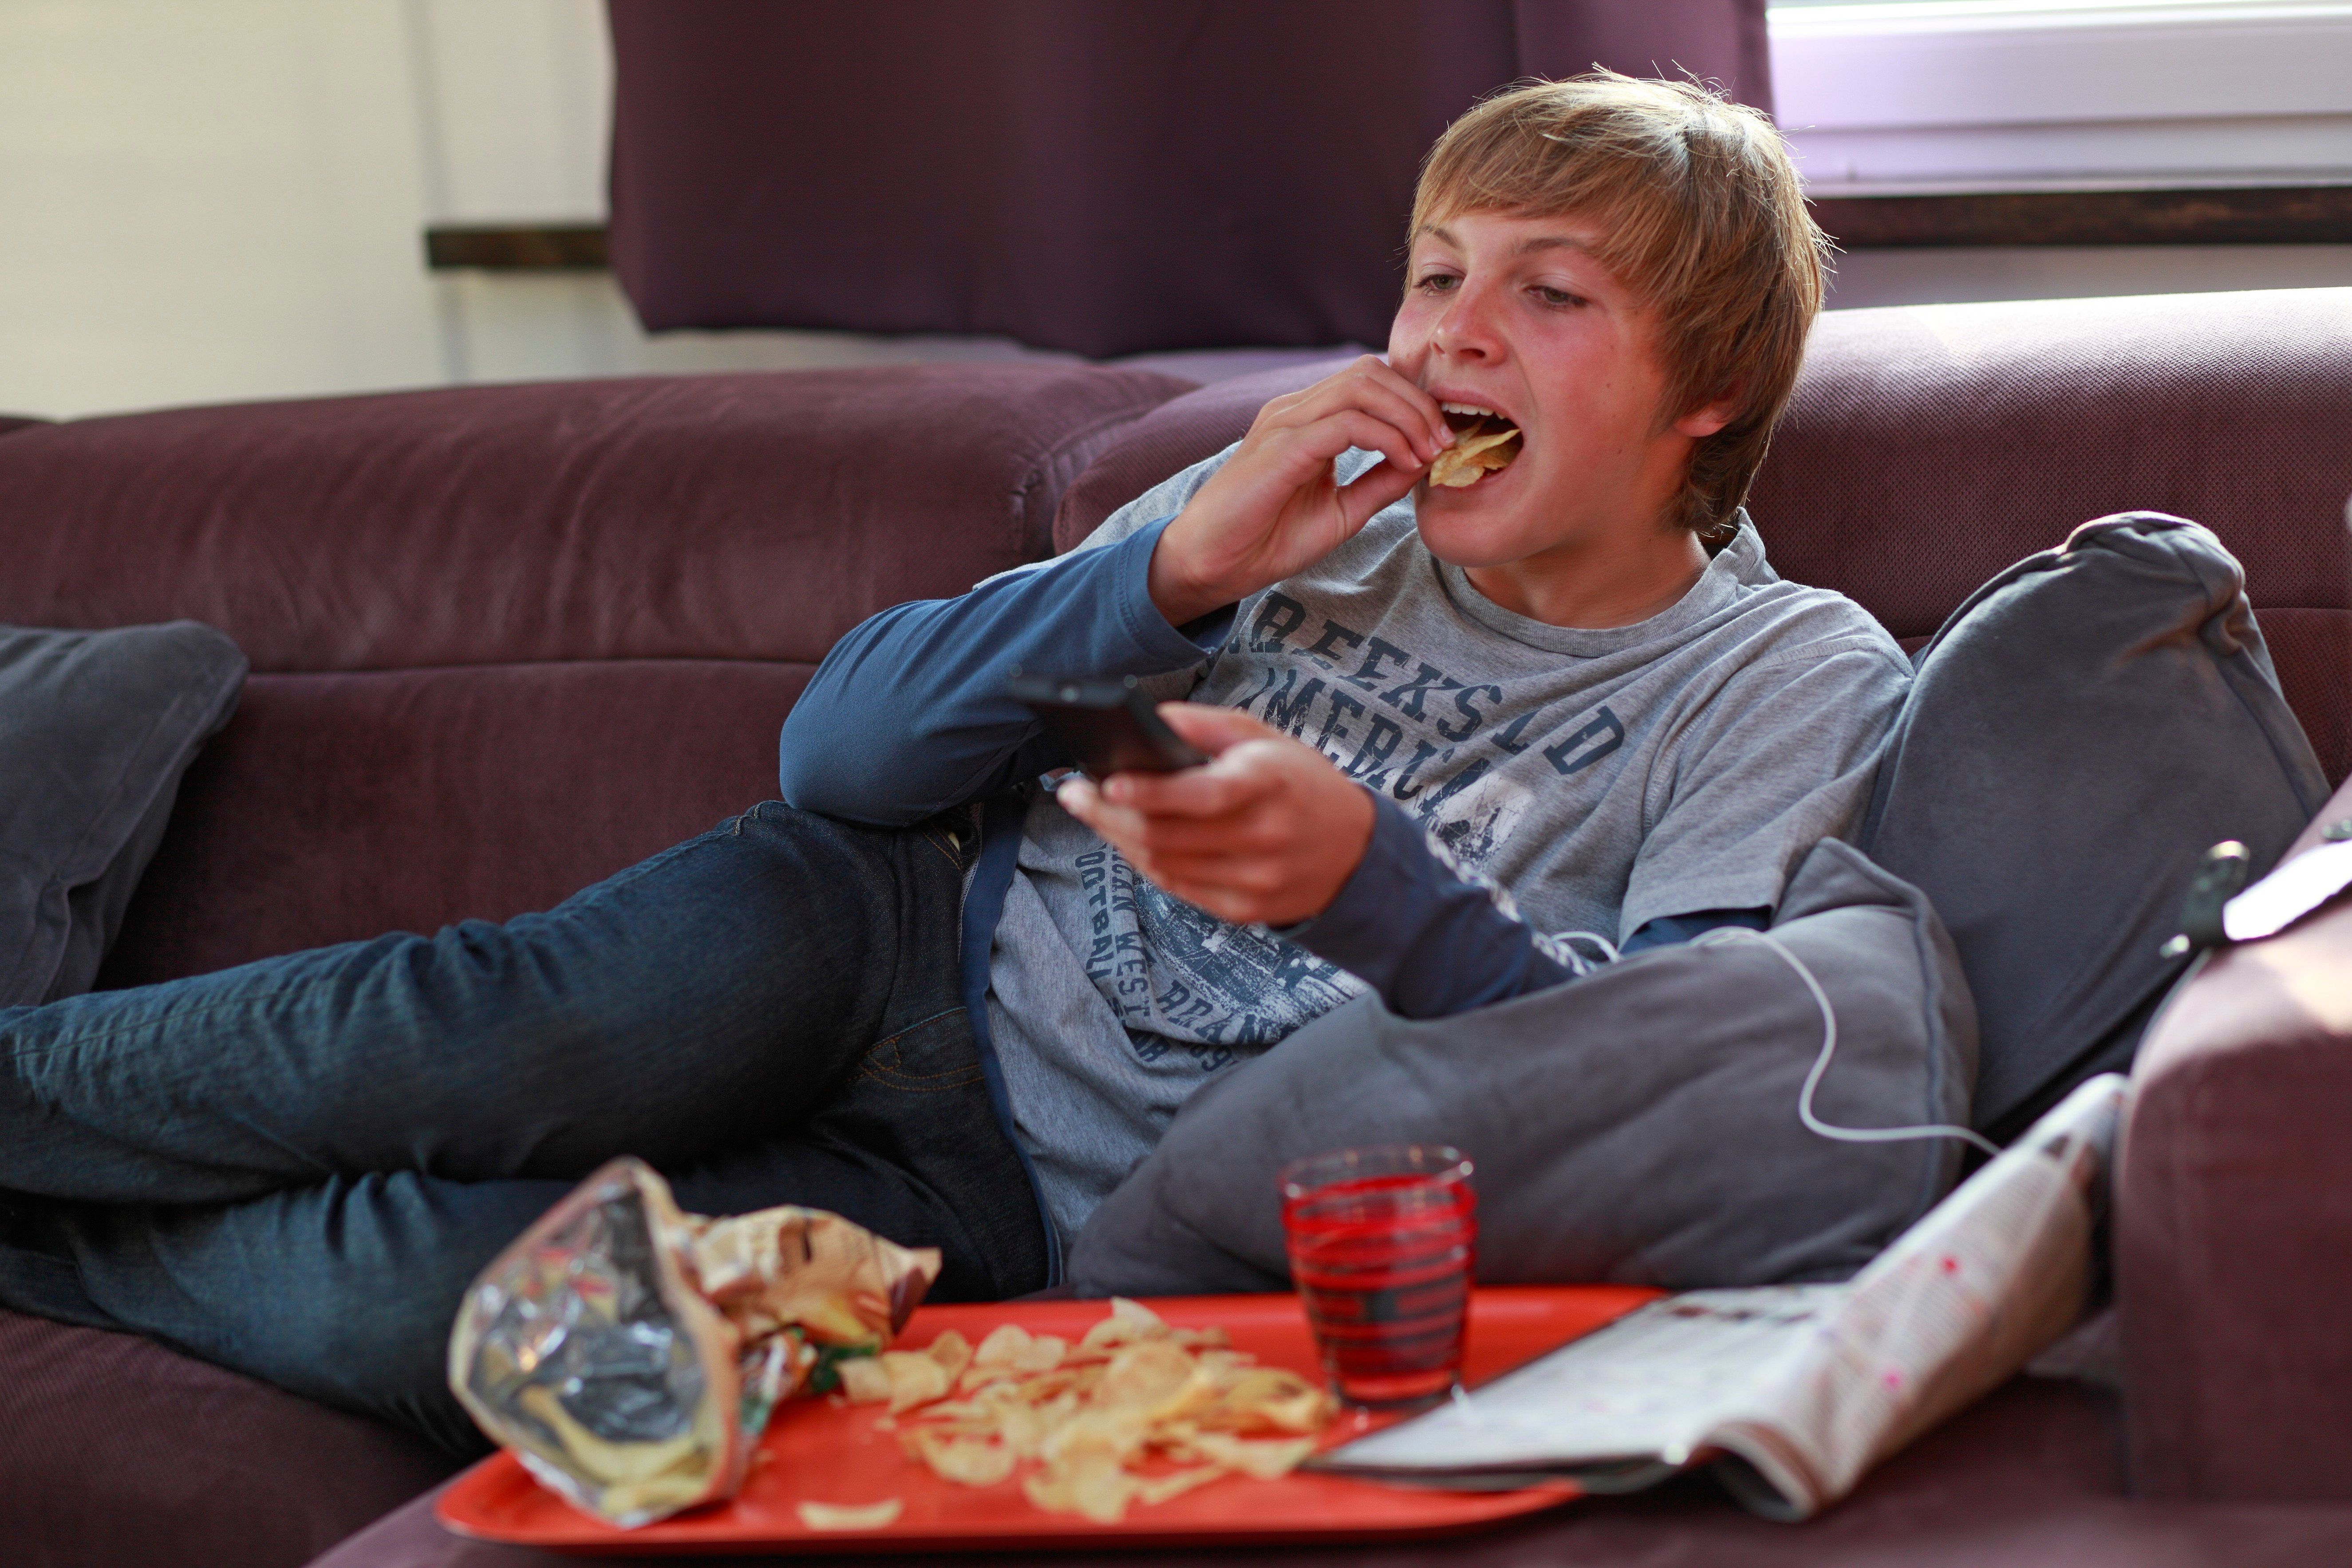 New report suggests link between TV ads and teens' snack patterns